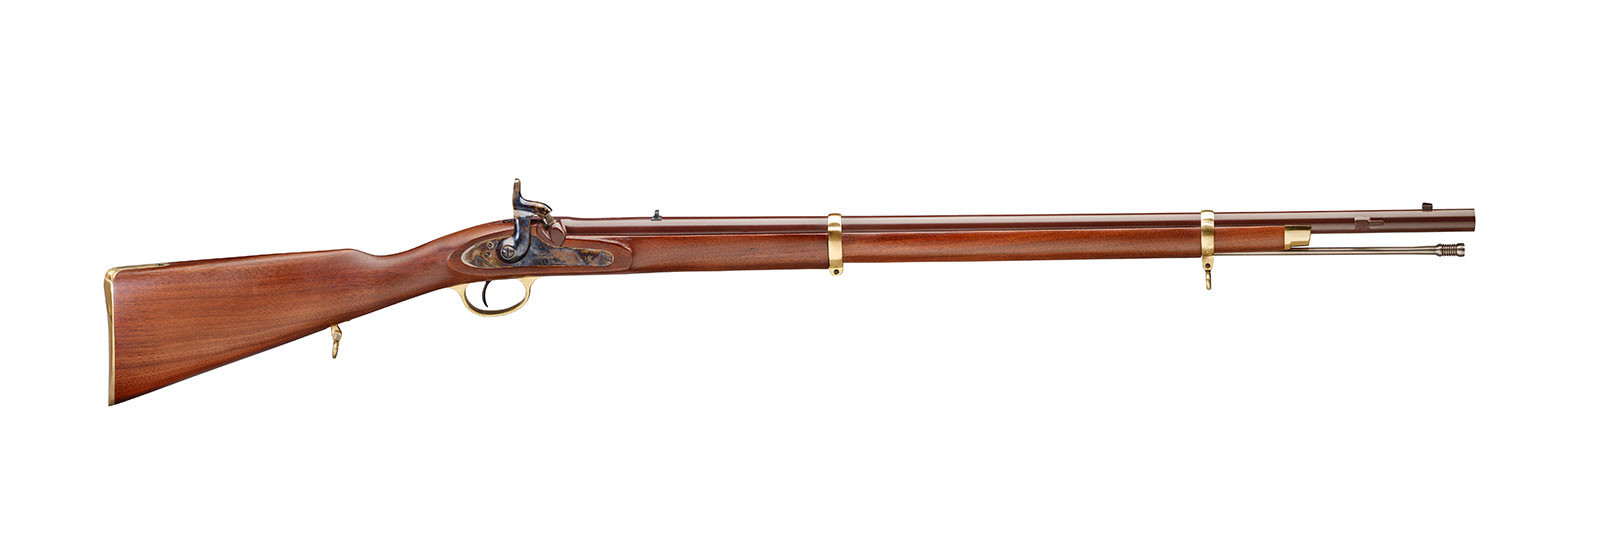 Cook & brother artillery rifle 58